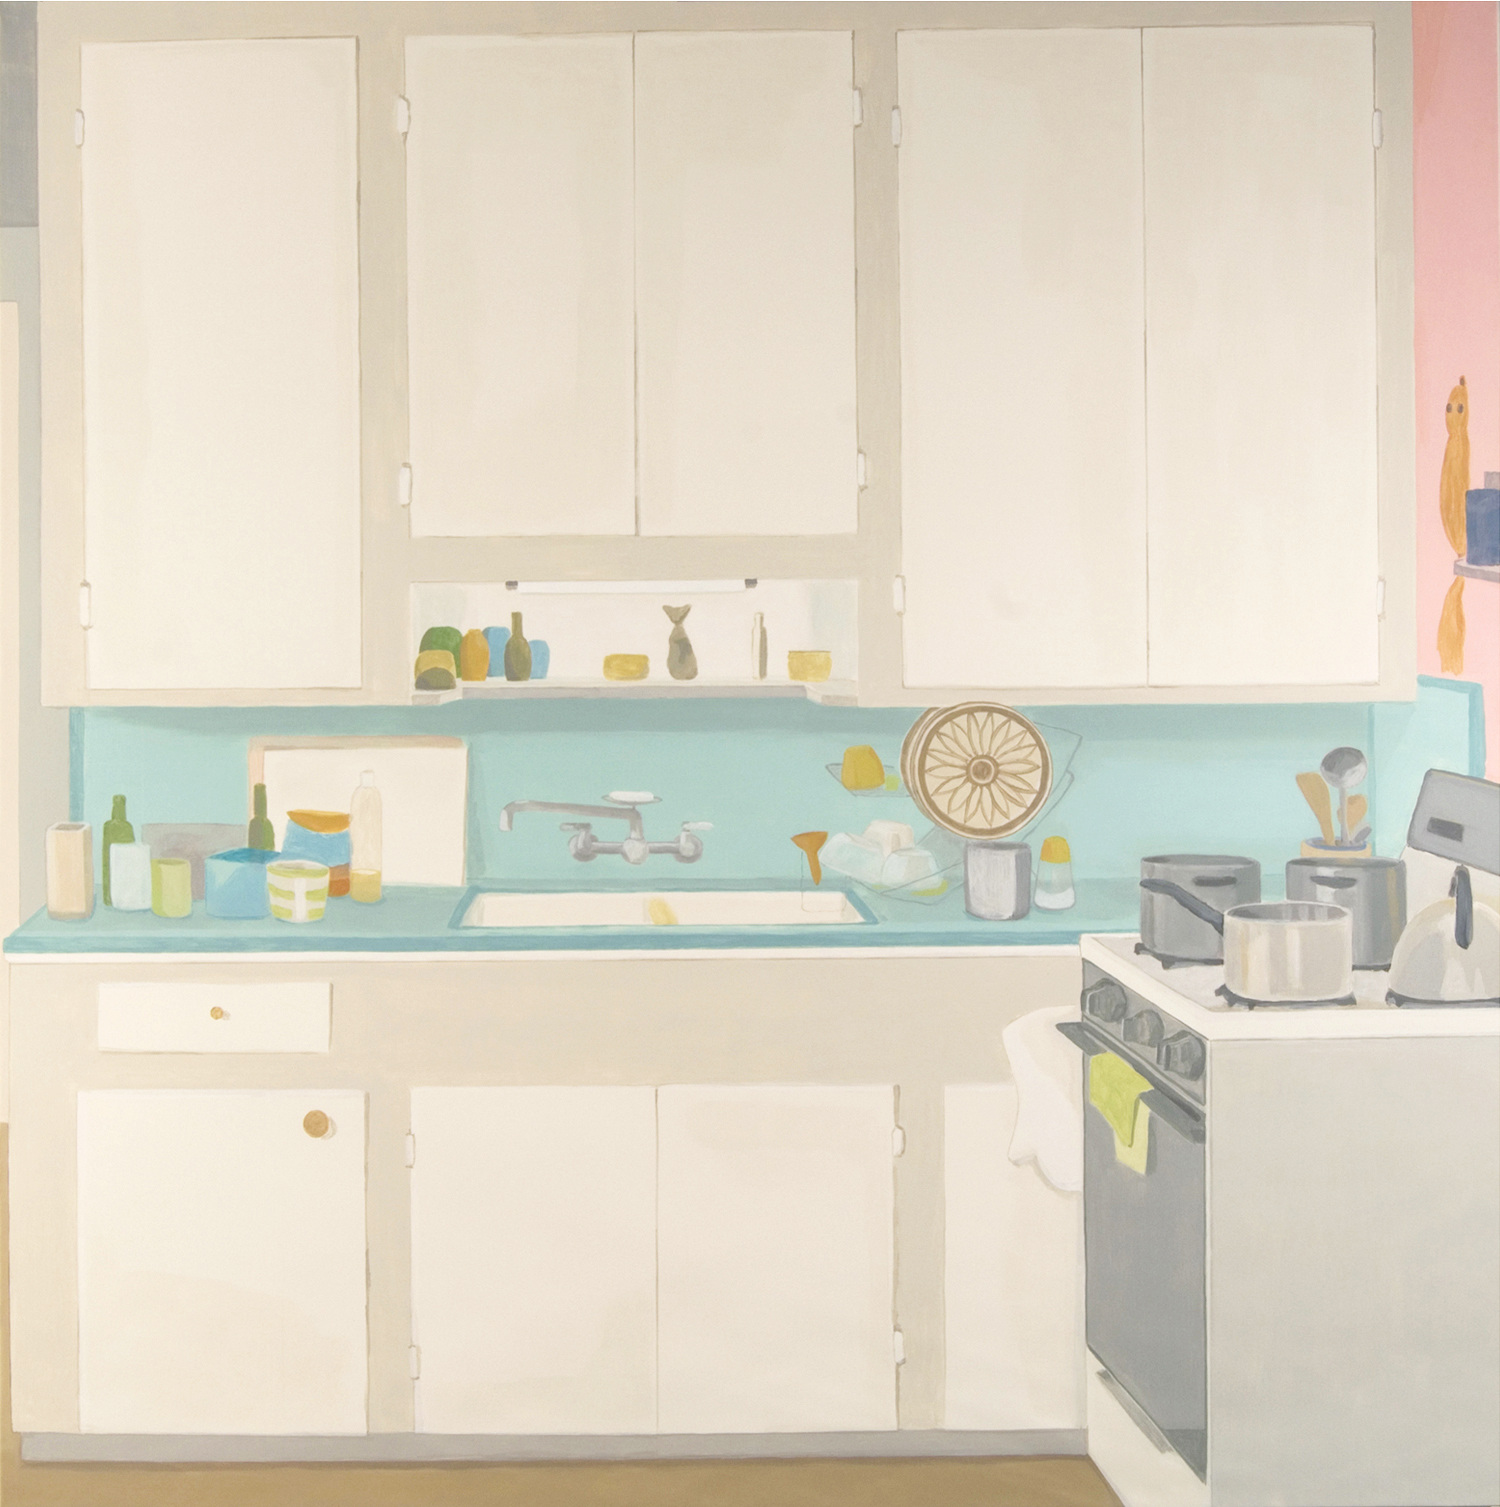 Kitchen, acrylic on canvas, 110 x 110 inches, 2006.  Perspectives 155,  Contemporary Arts Museum Houston , 2007.